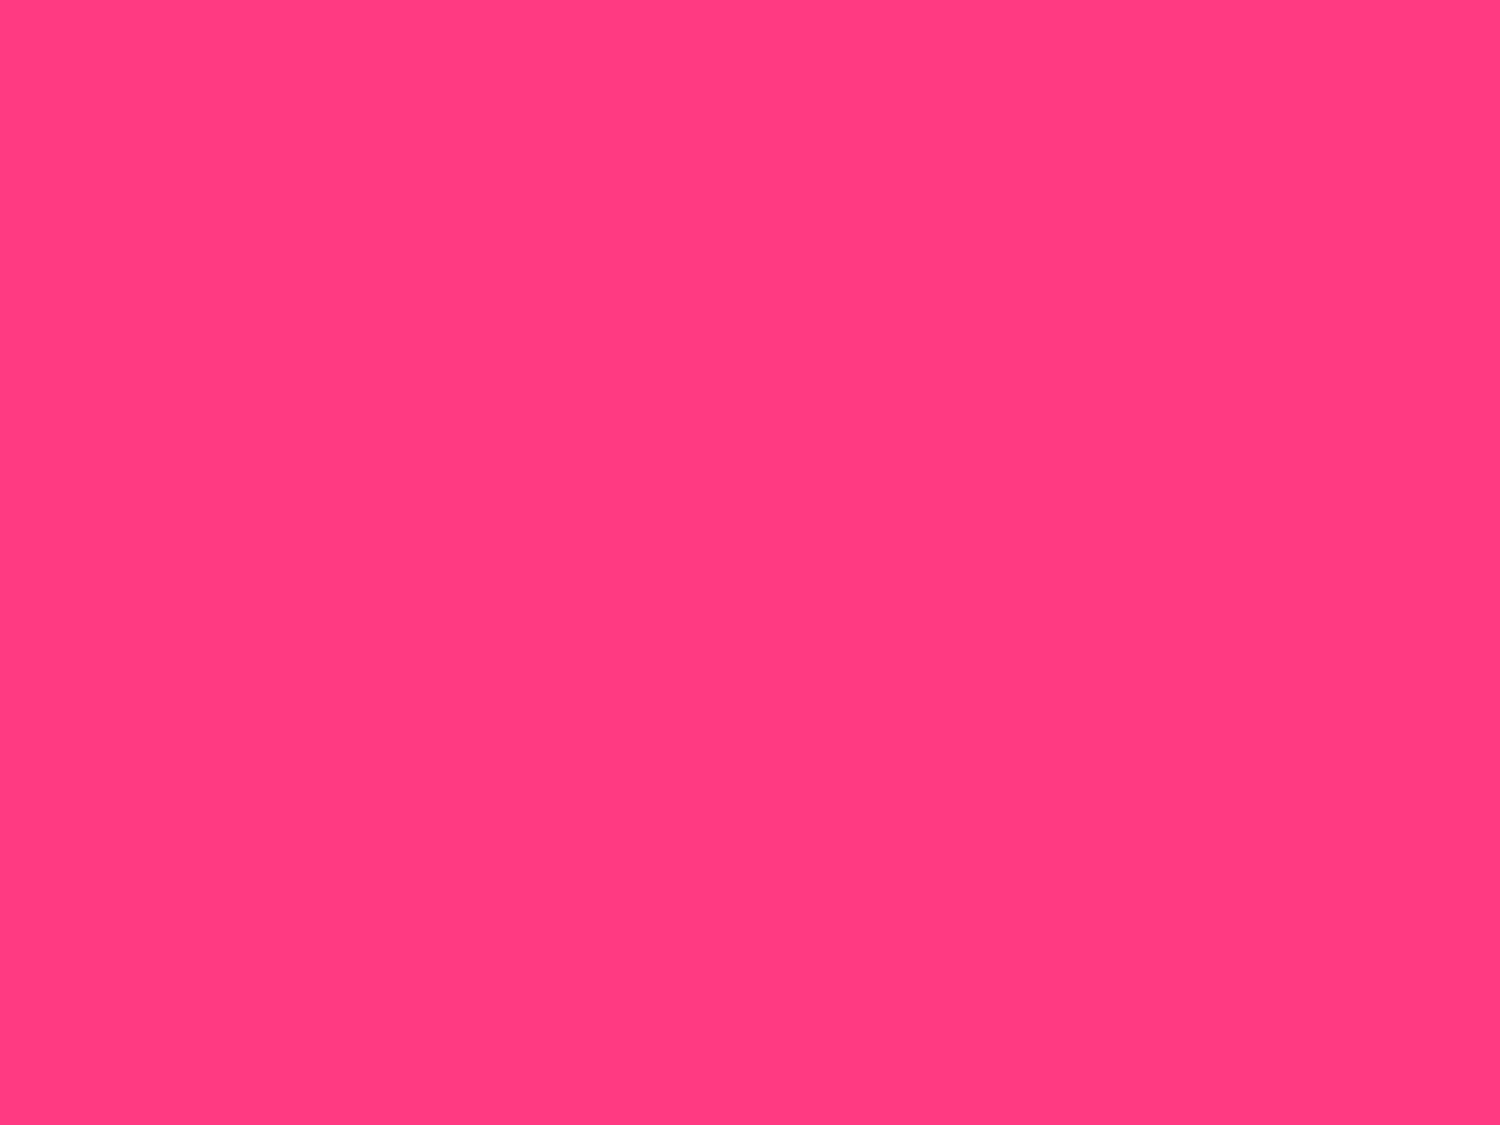 pin solidpinkwallpaper on pinterest